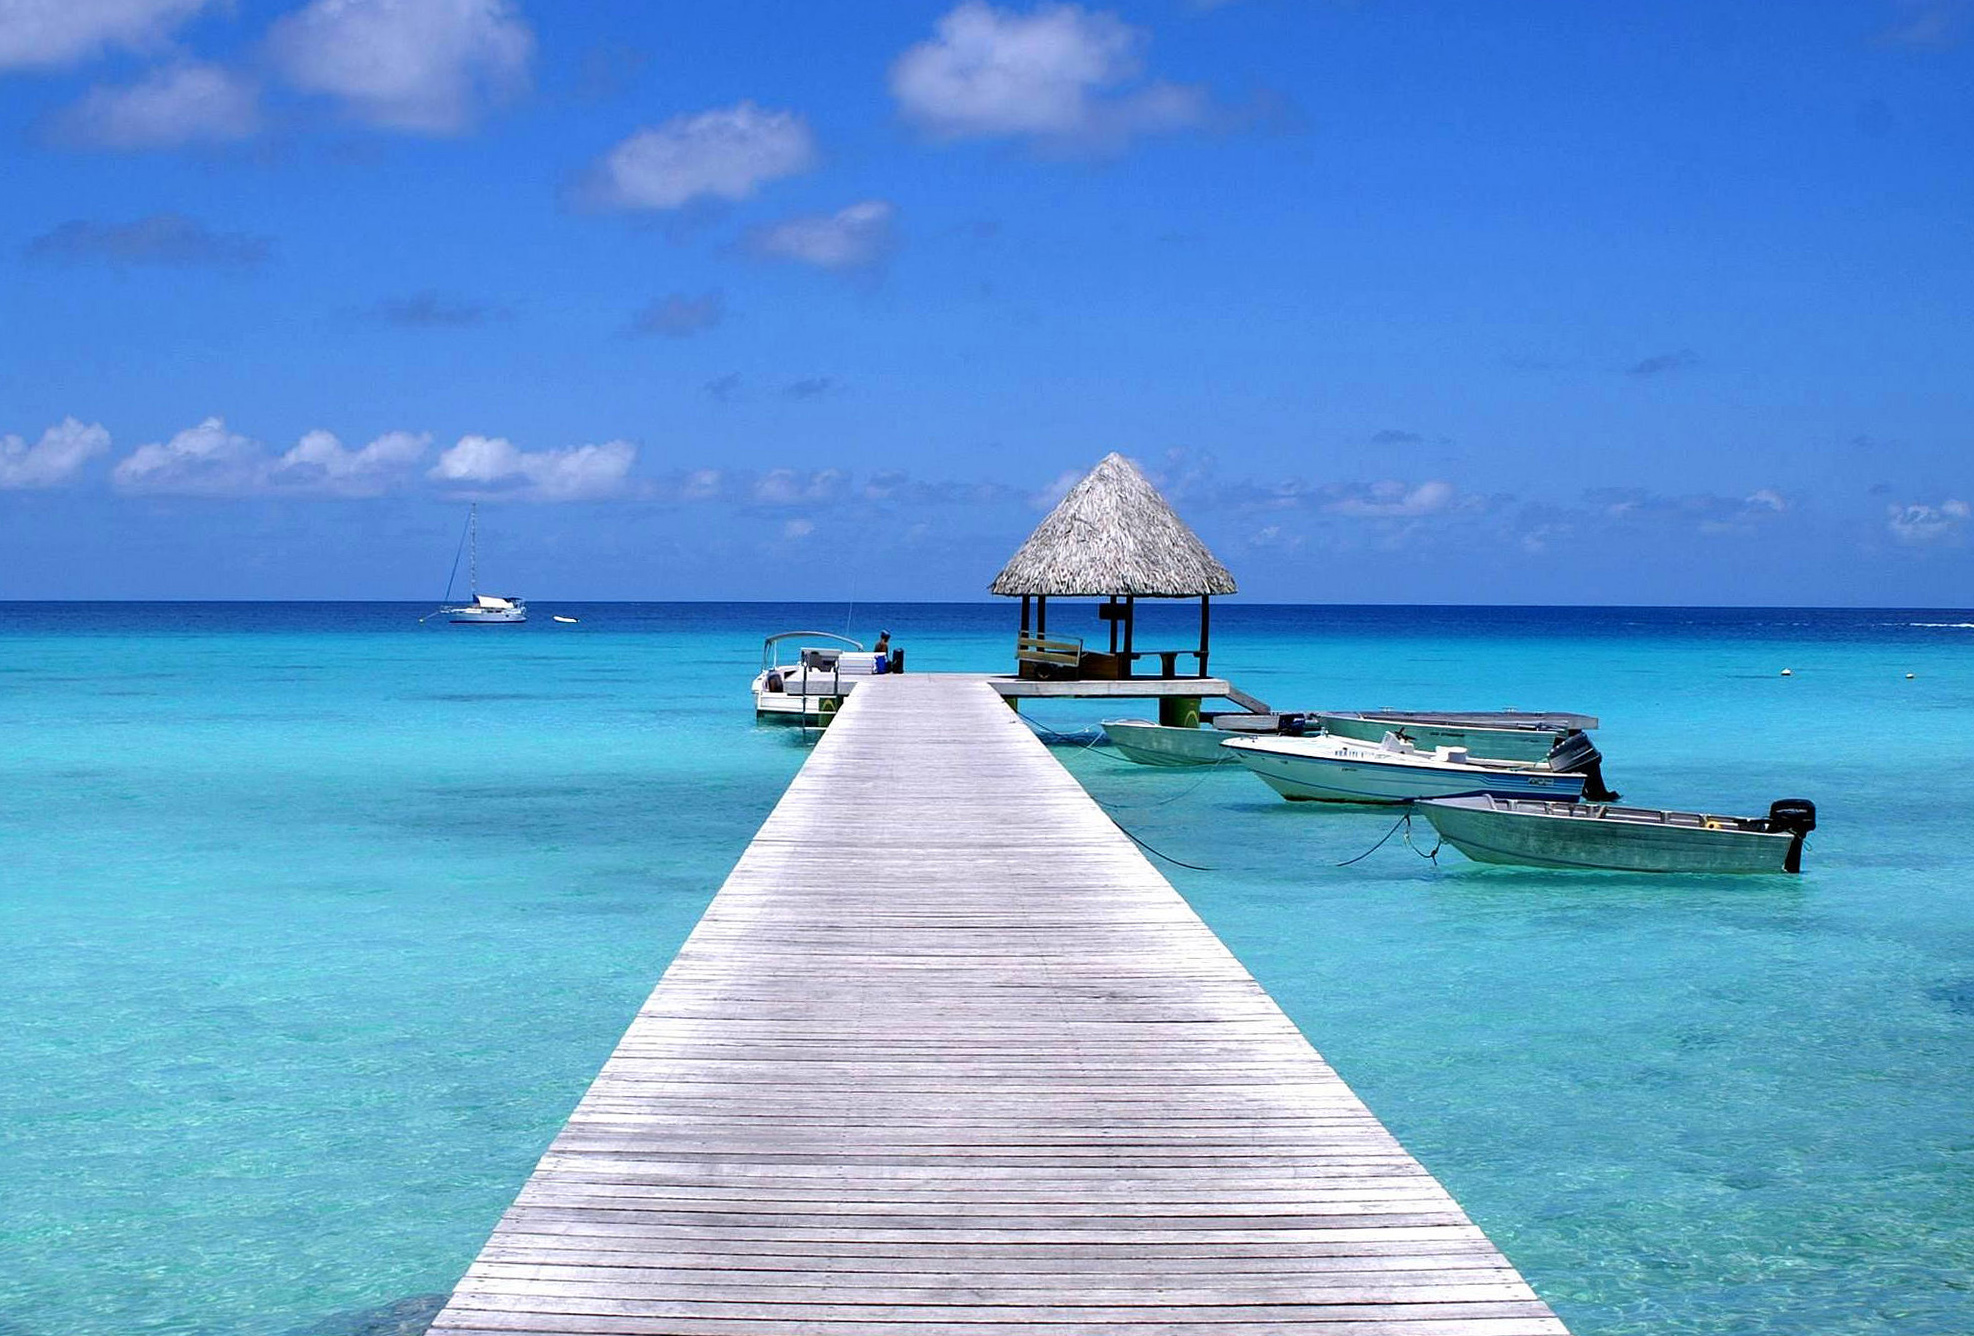 The pier at Kia Ora Resort on Rangiroa Atoll. Pic: Dany13/flickr